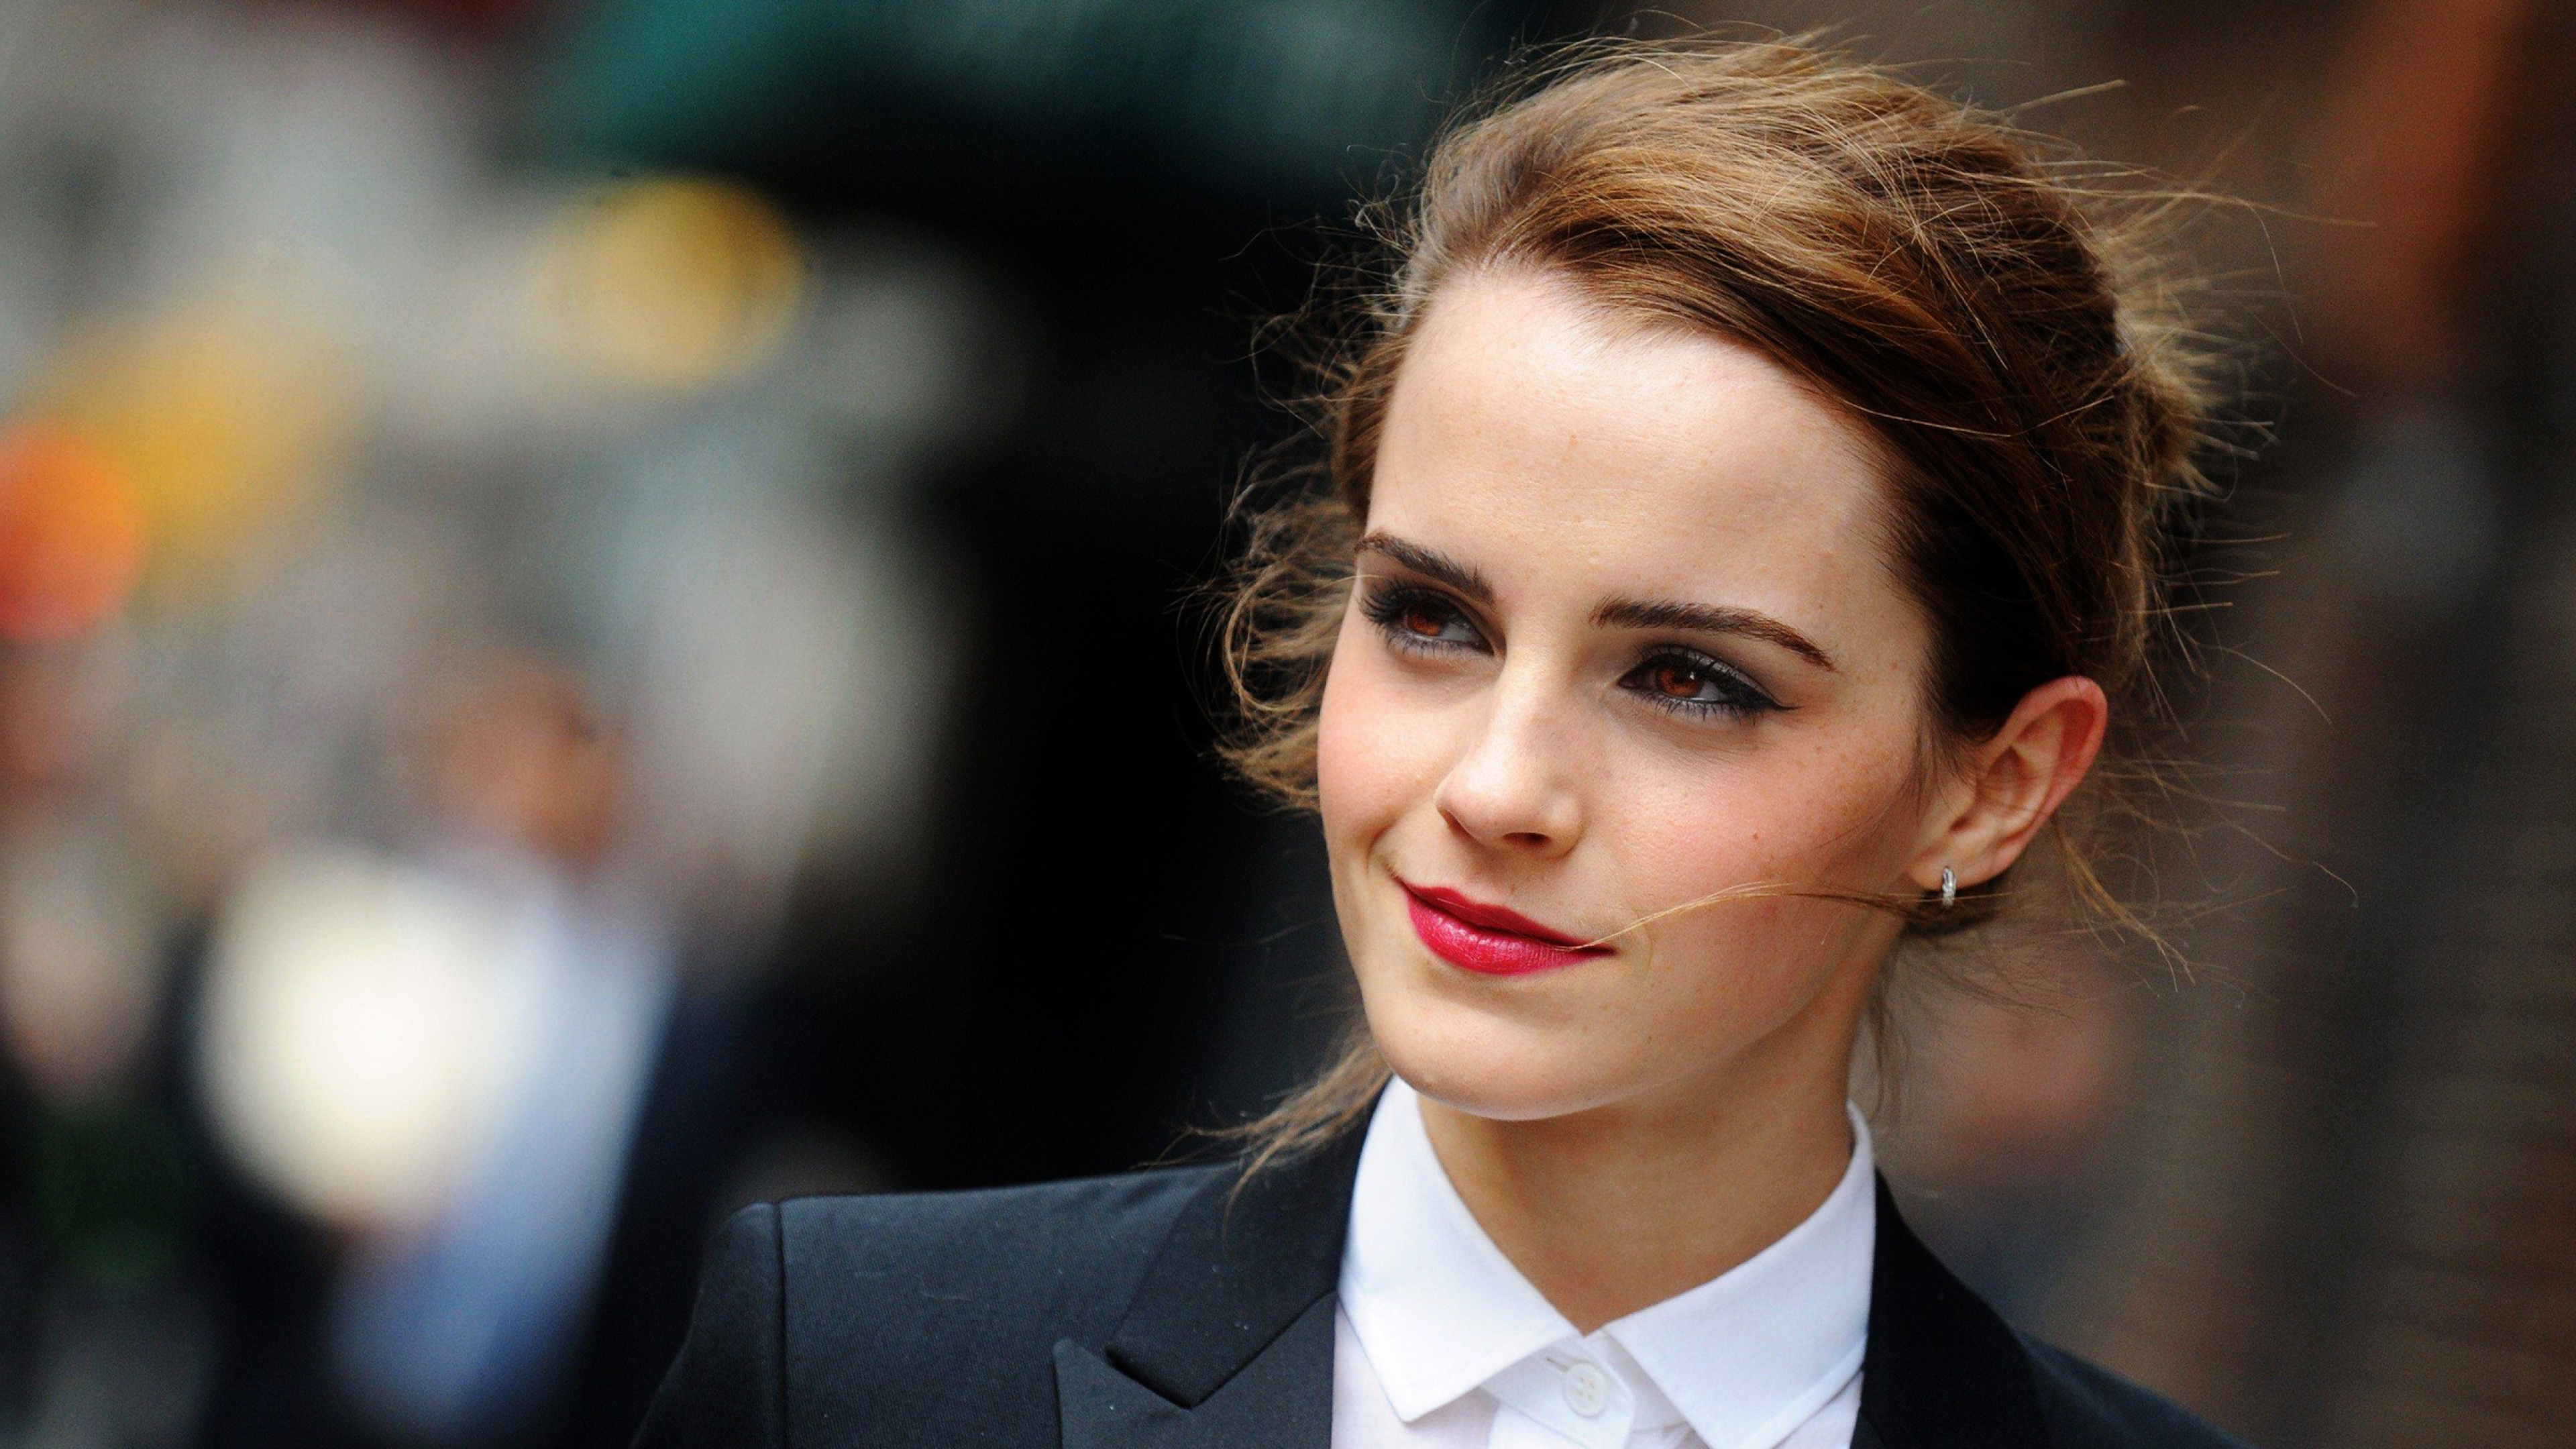 cute emma watson excellent beauty face look still download free computer background hd images